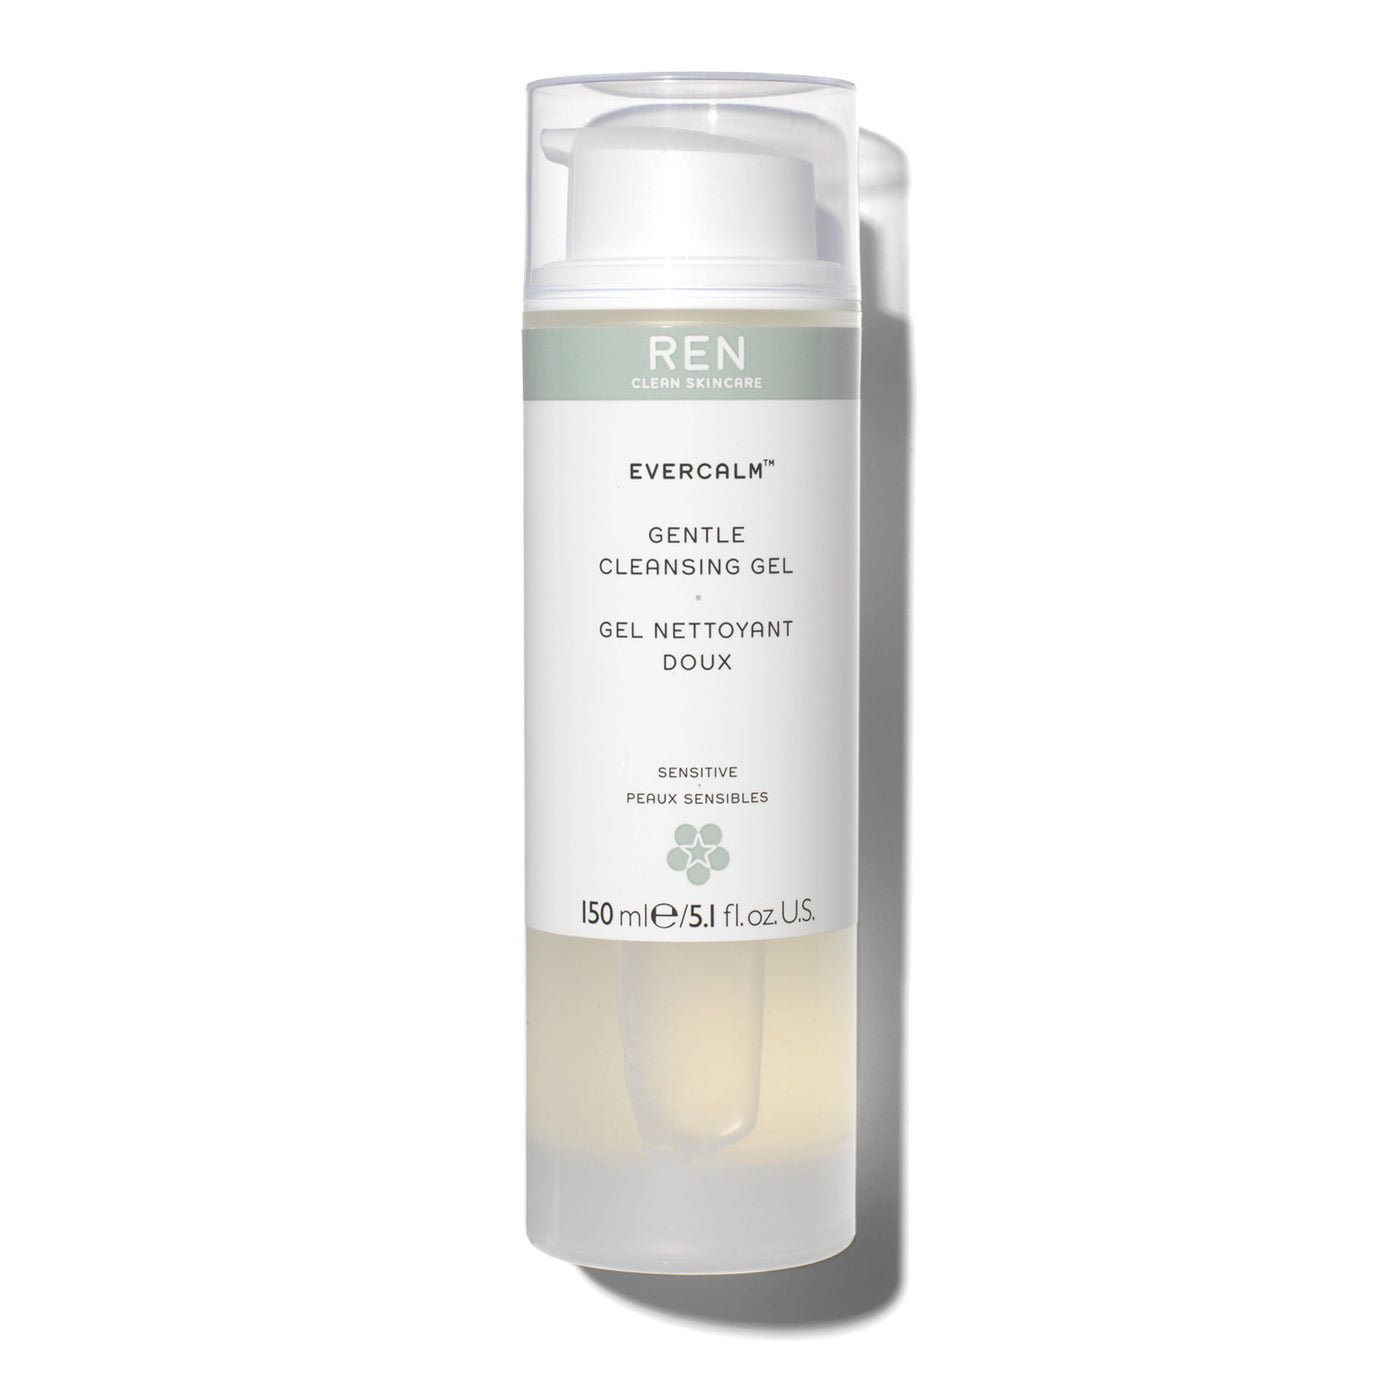 Load image into Gallery viewer, Ren Evercalm Gentle Cleansing Gel